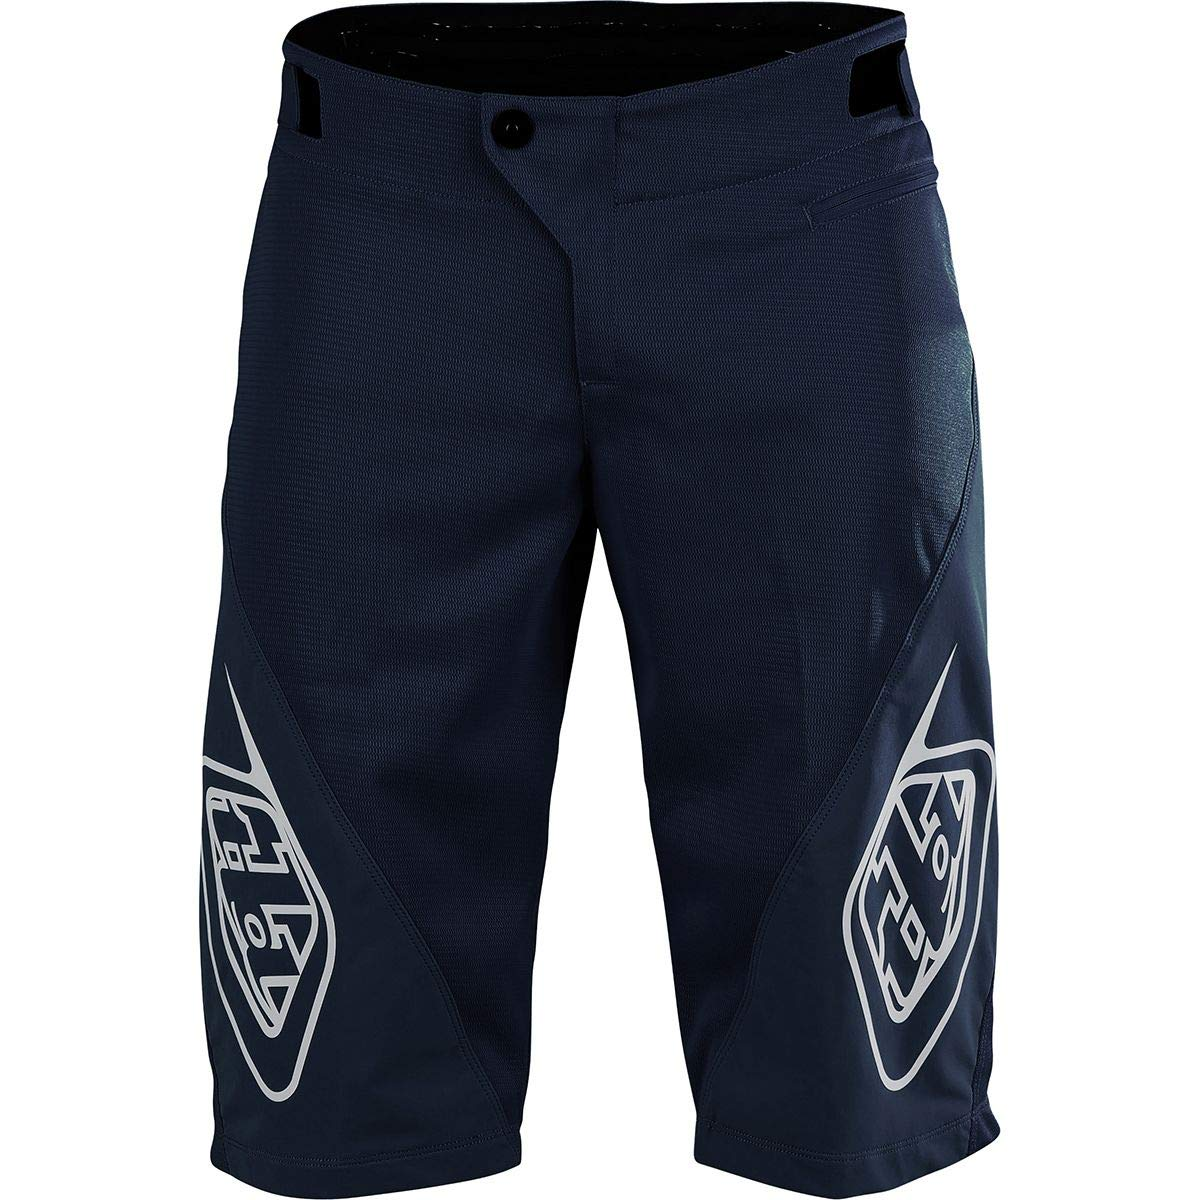 Troy Lee Designs Sprint Shorts - Boys' Solid Navy, 20